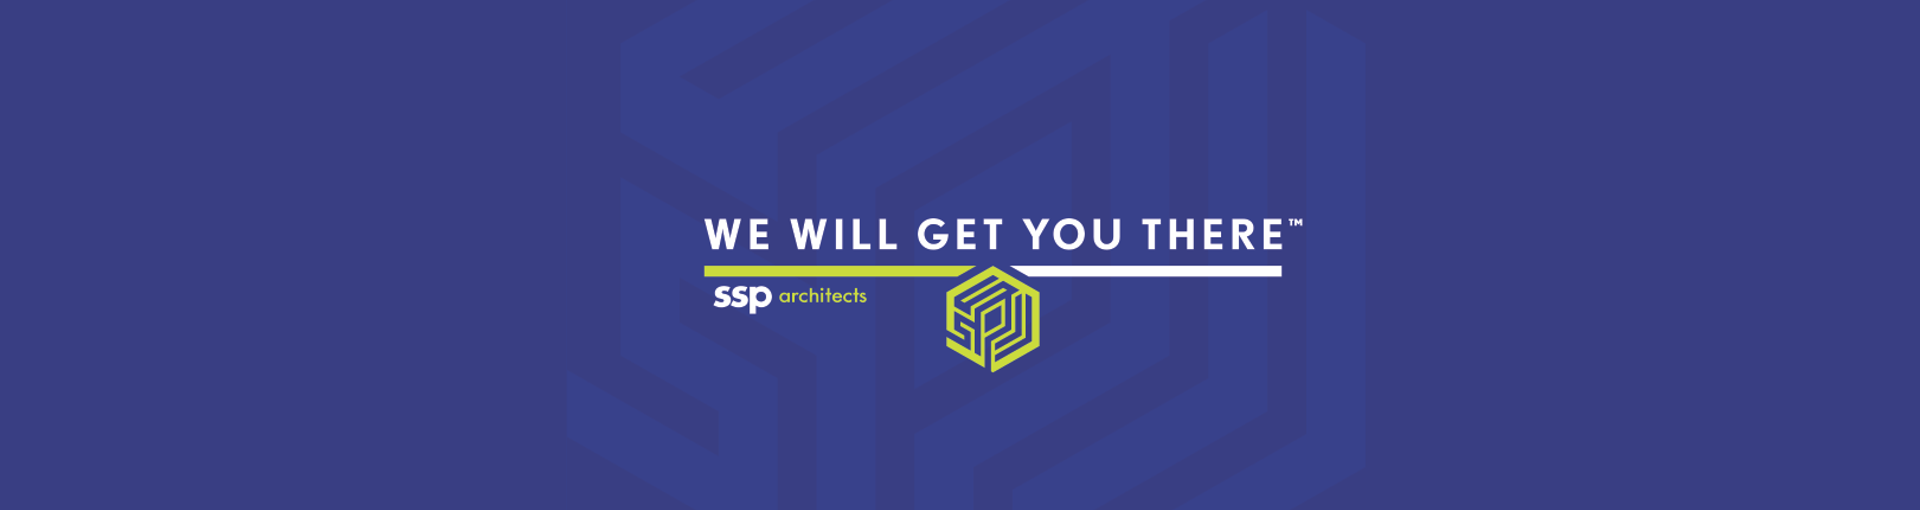 SSP Architectural Group